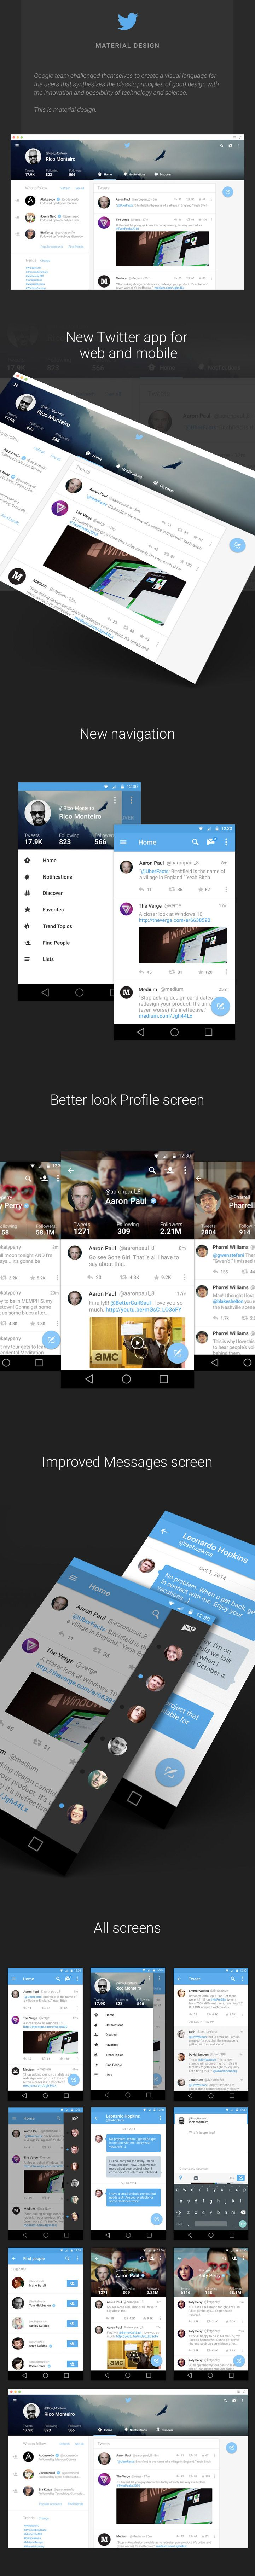 How Twitter for web and Android could be if following Material Design Guidelines. #ui #interface #mobile by rico monteiro